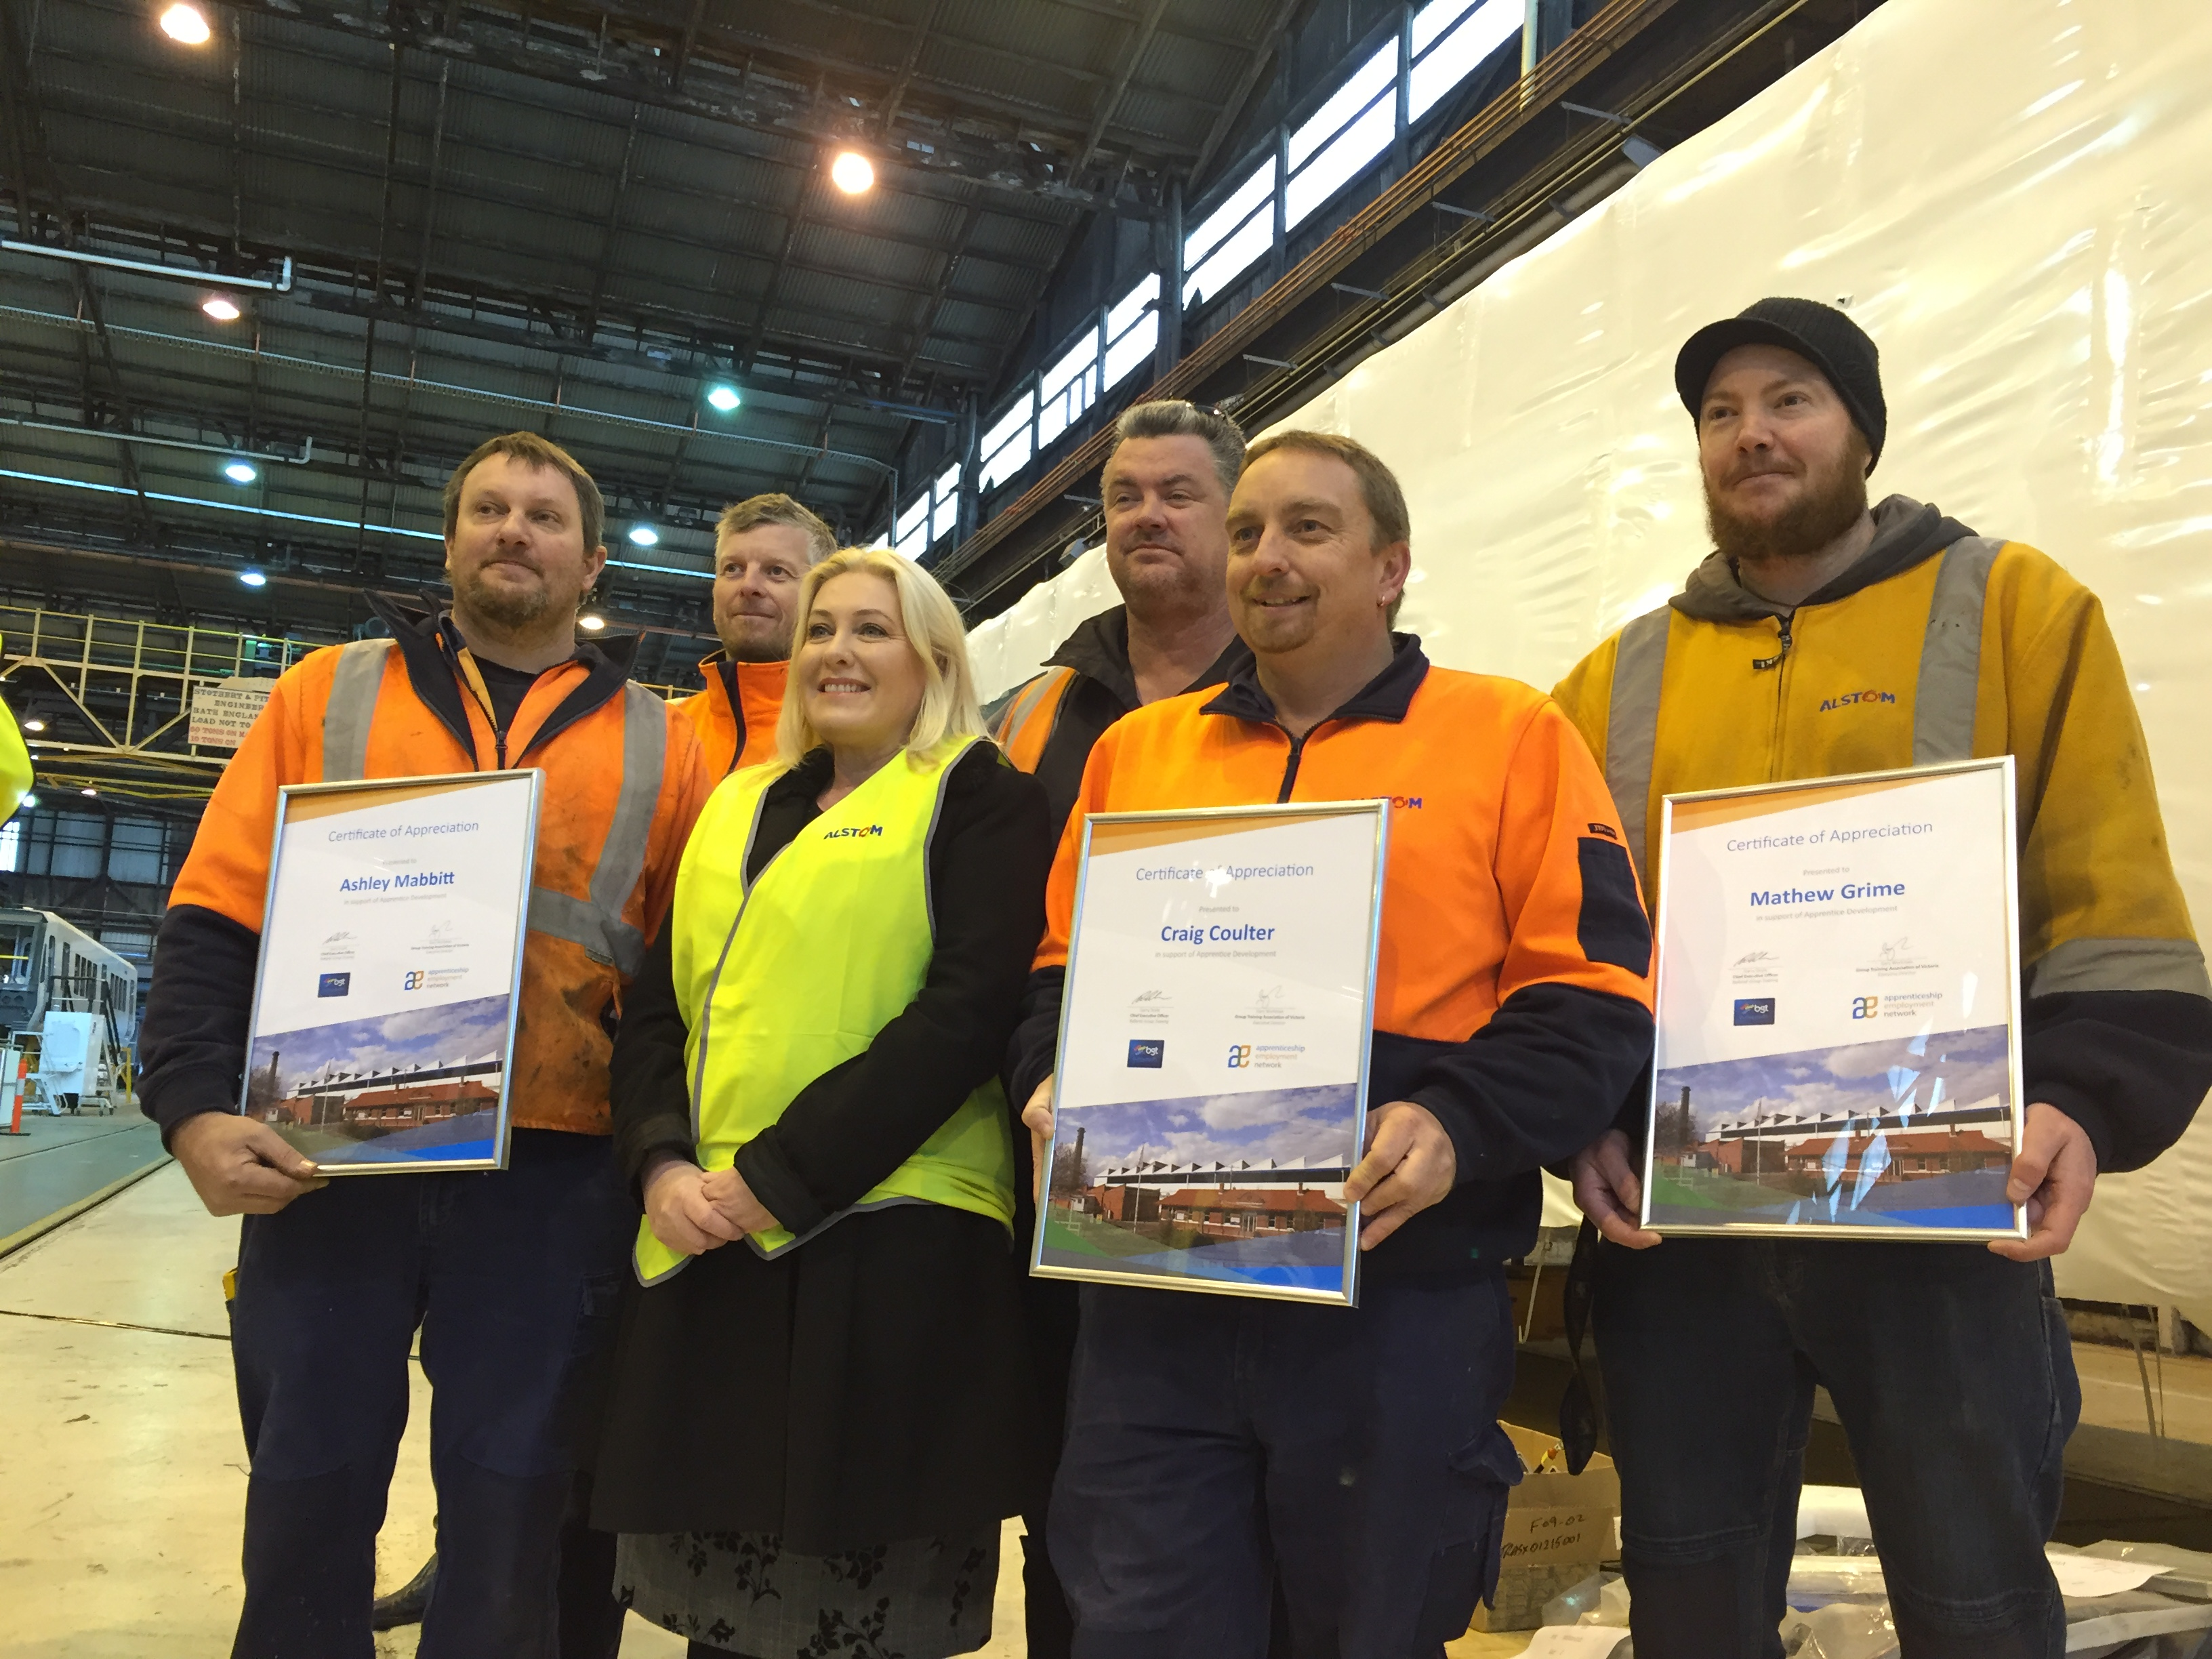 Members lauded for helping future workers